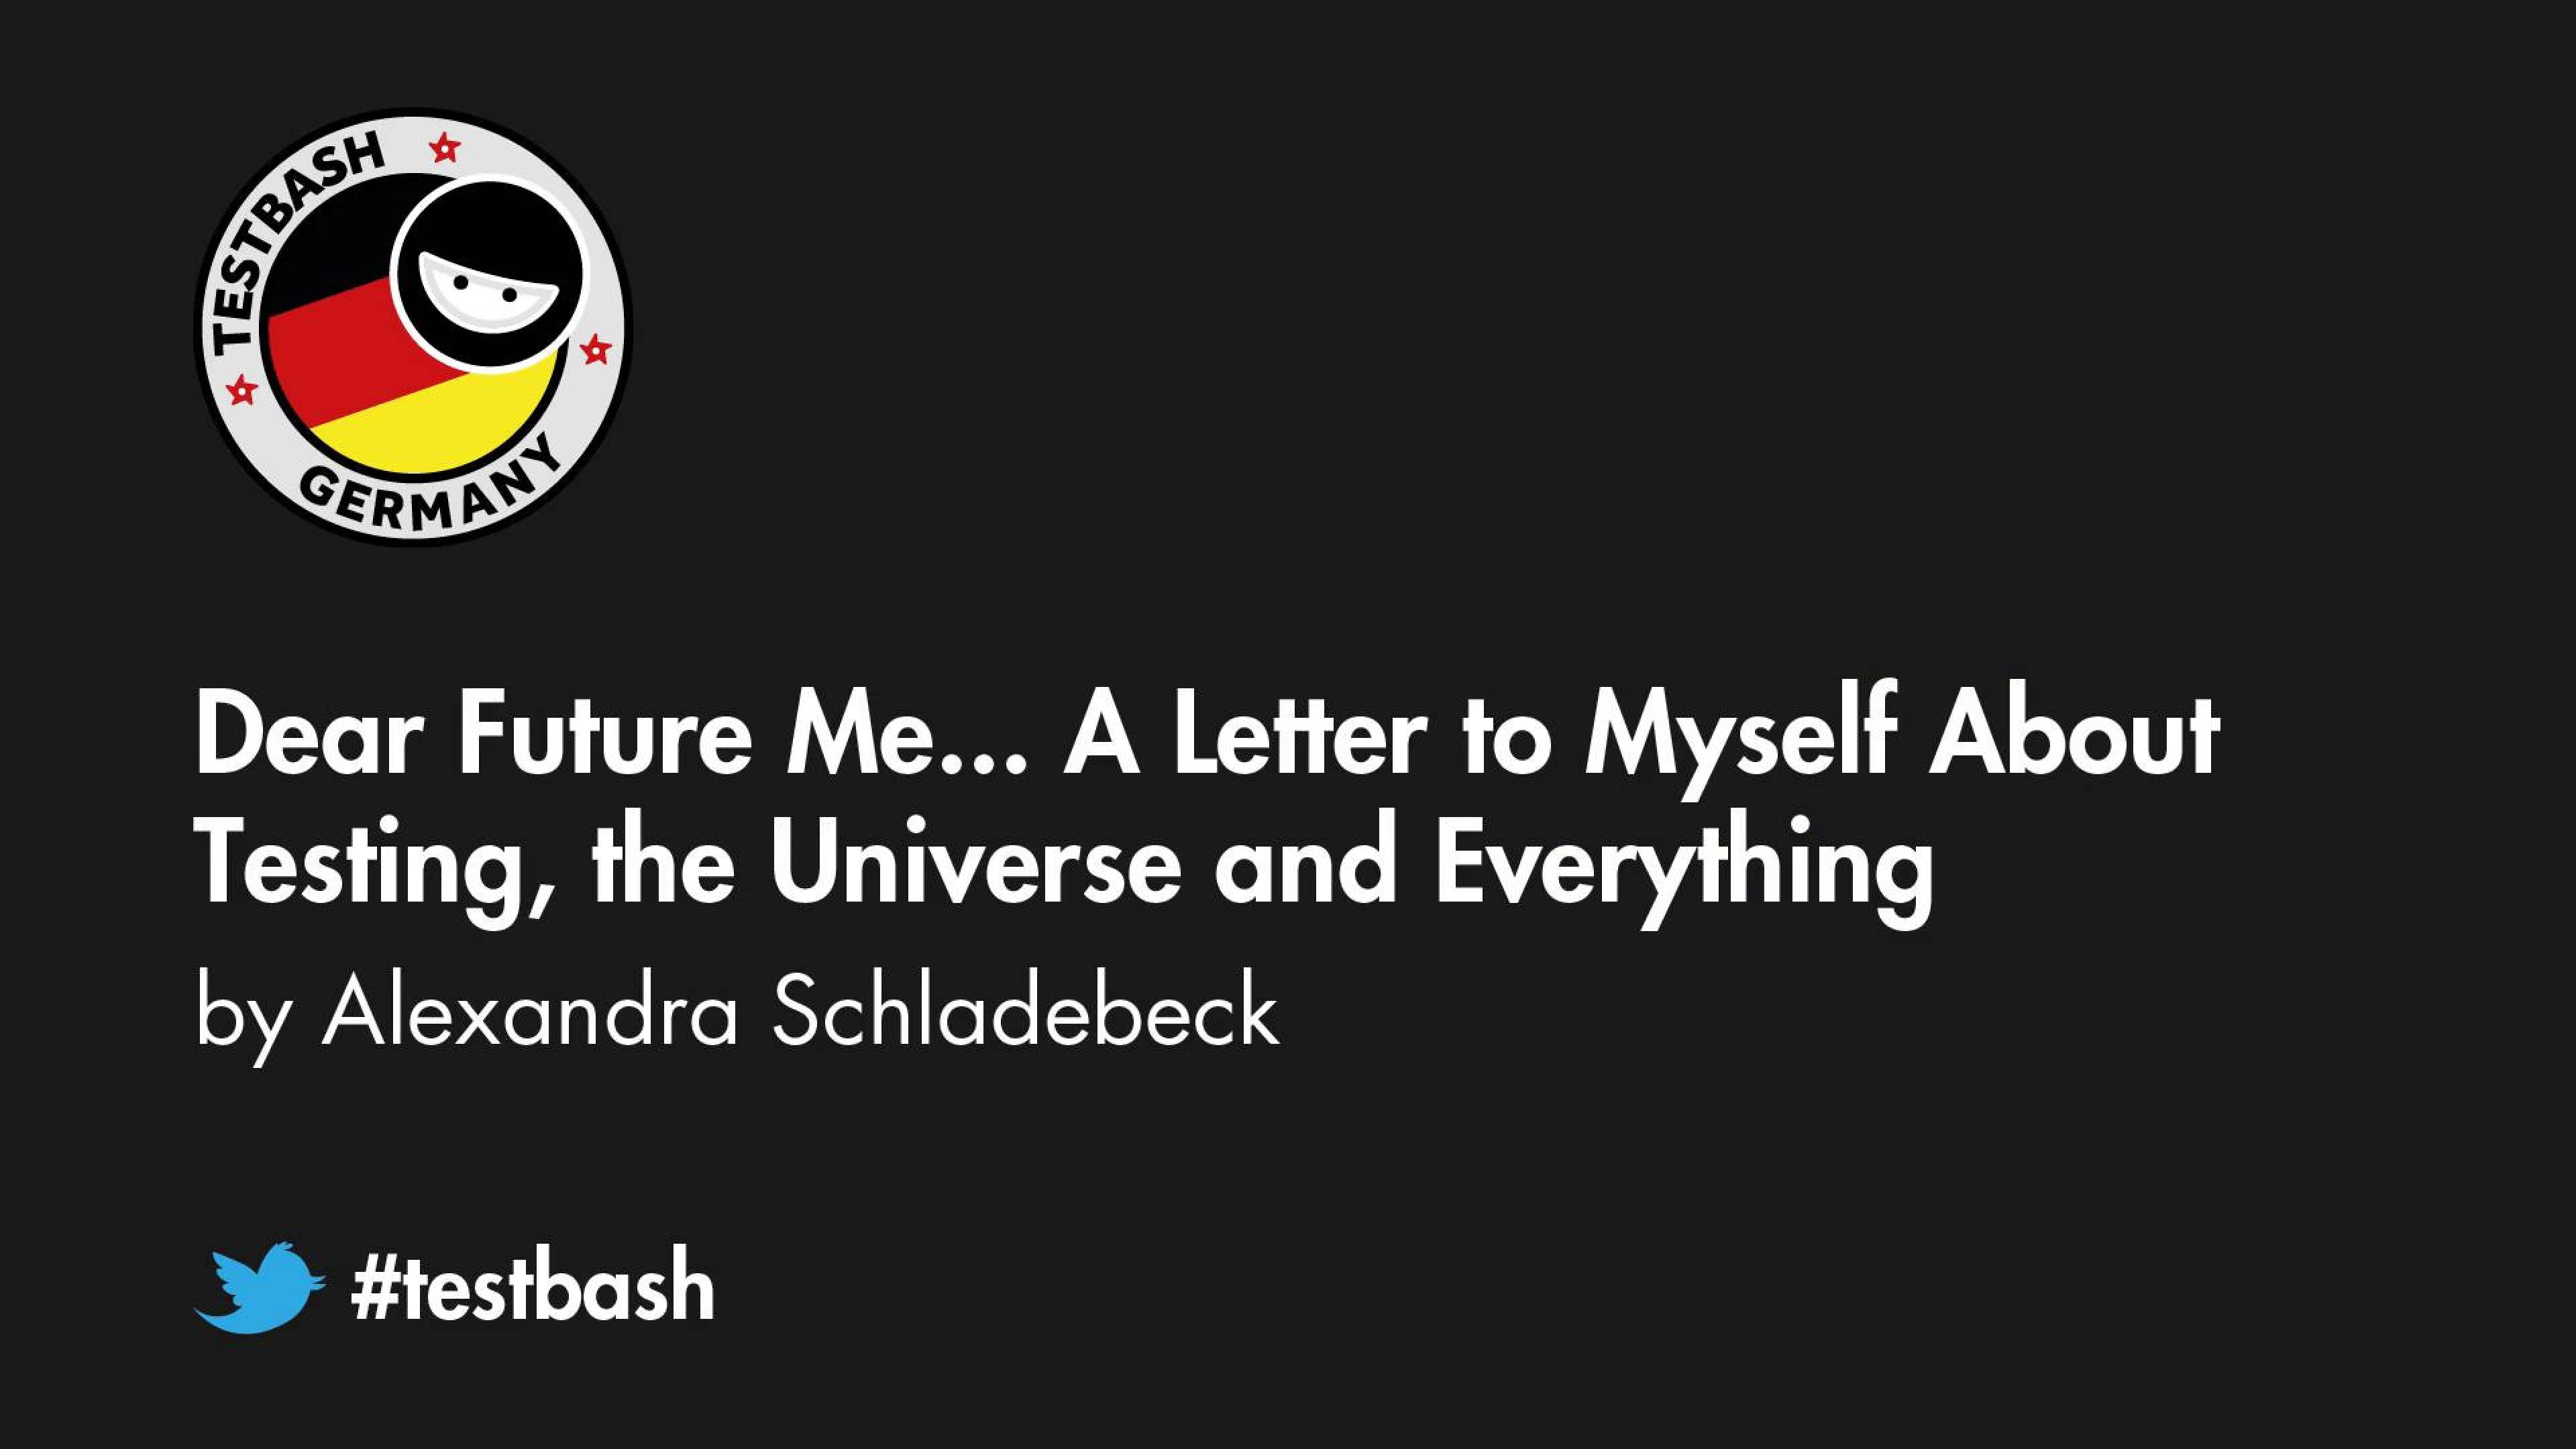 Dear Future Me... A Letter to Myself about Testing, the Universe and Everything - Alex Schladebeck